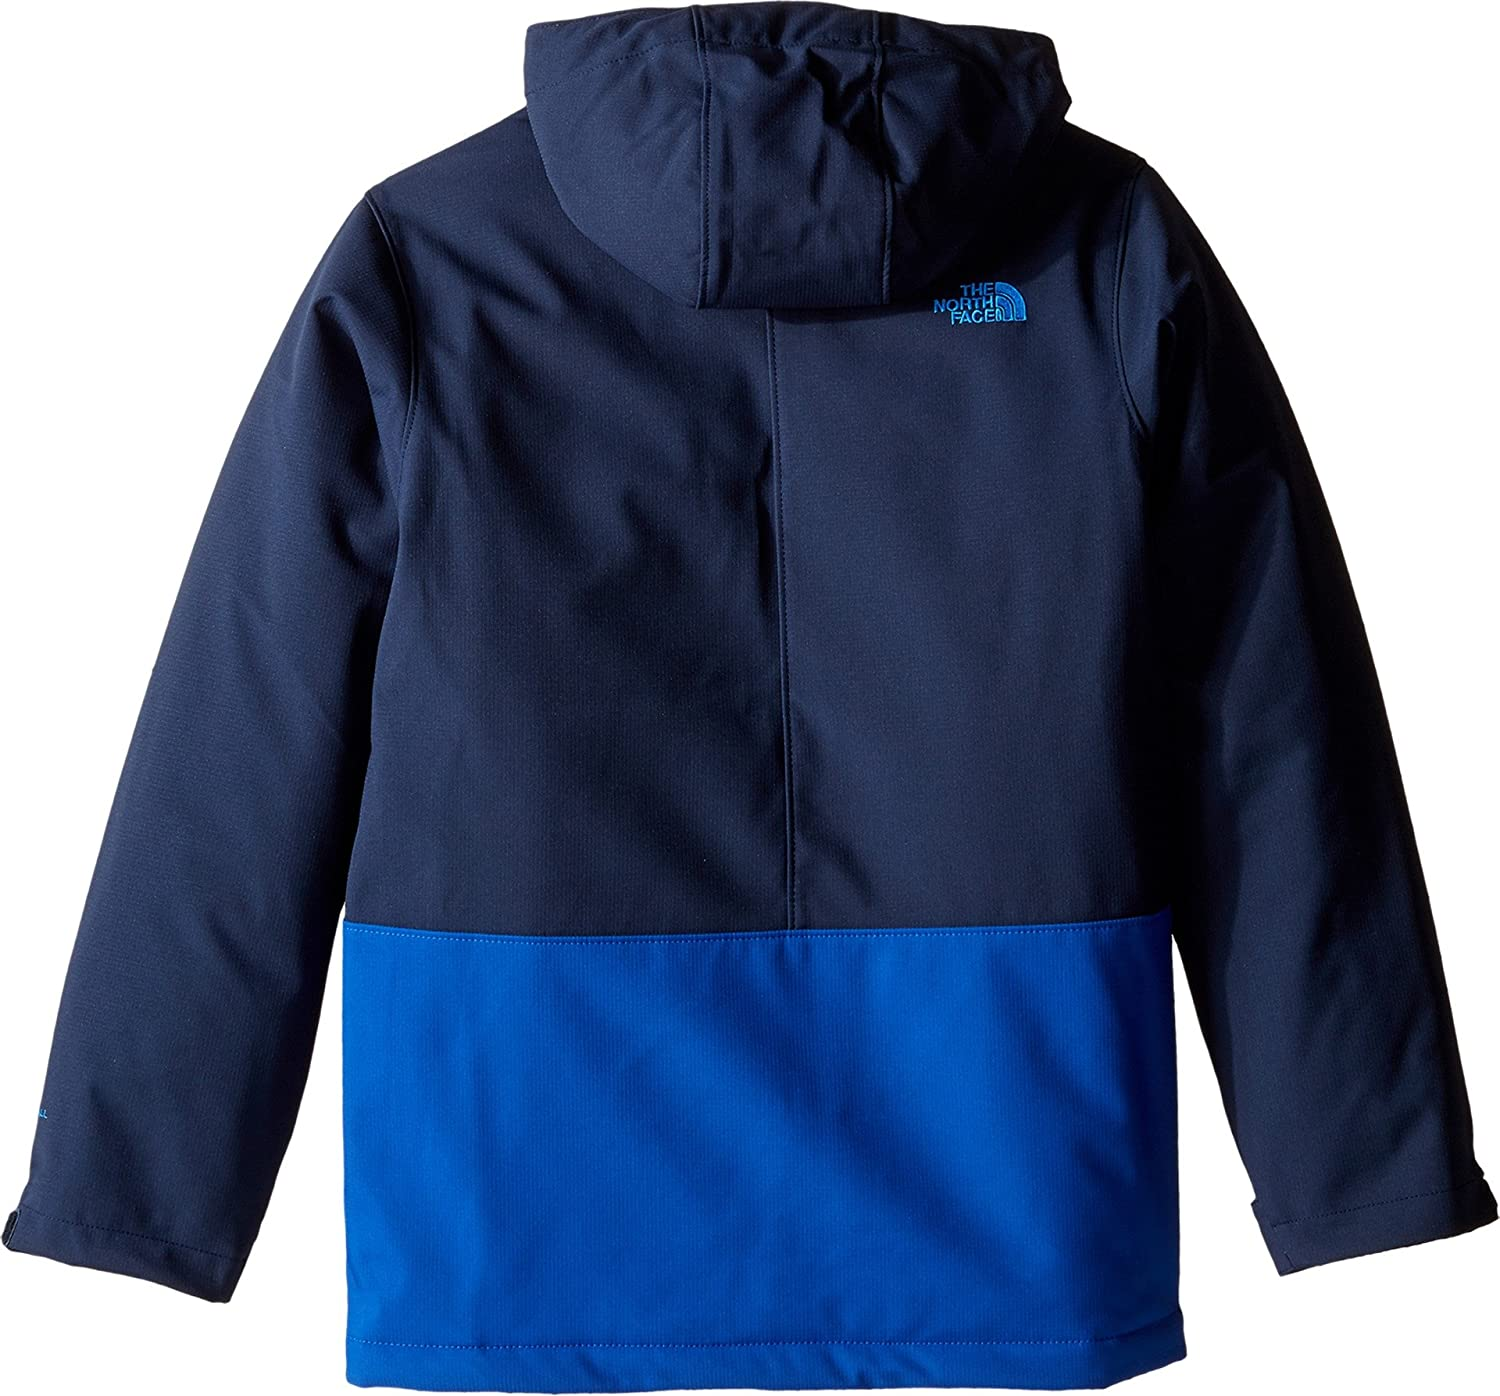 23be4479f7f5 Amazon.com  The North Face Boys  Apex Elevation (Little Big Kids)  Clothing